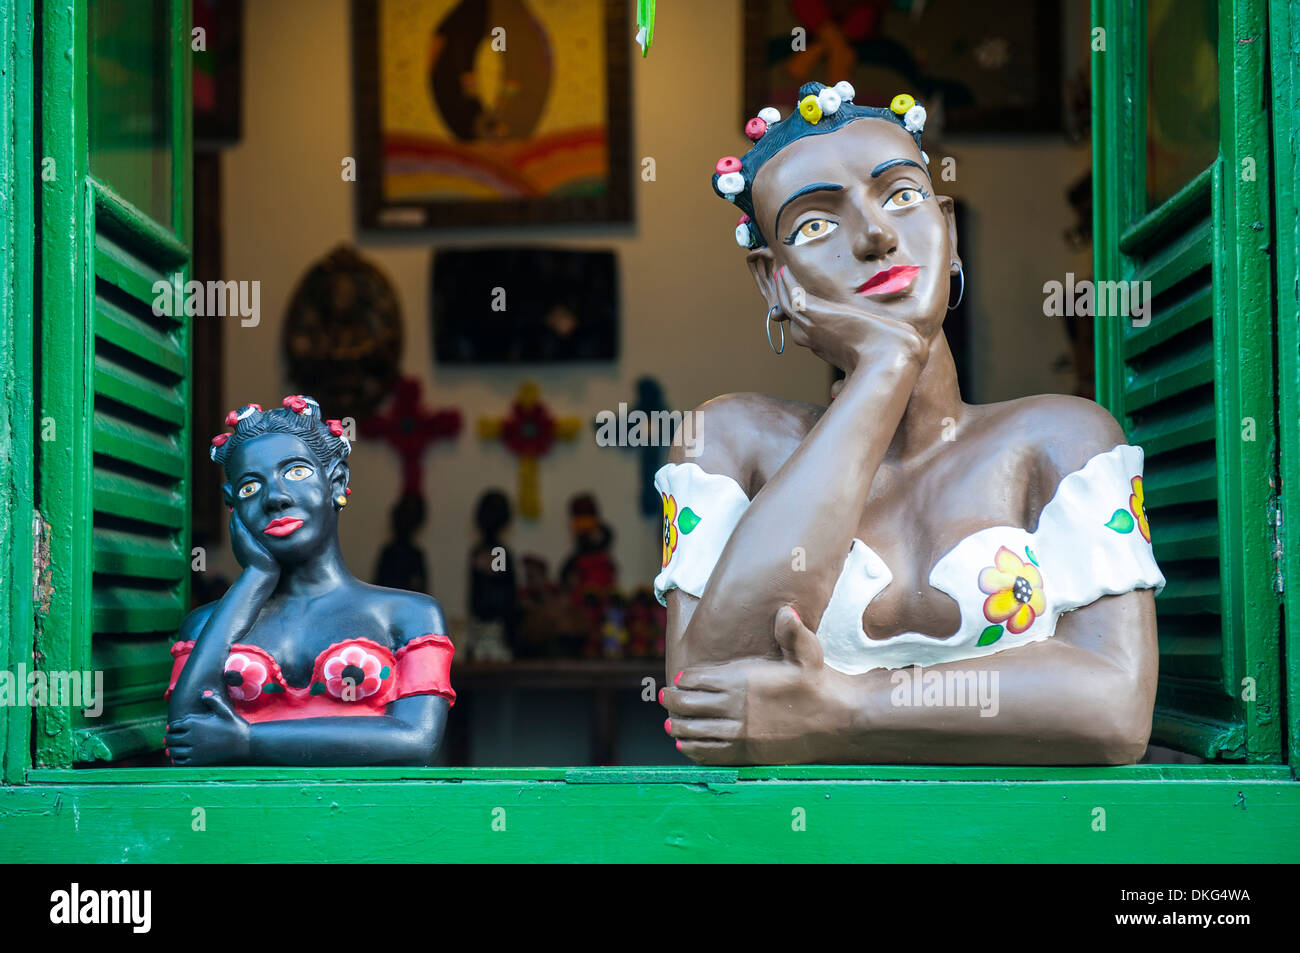 Traditional puppets in a window in Sao Joao del Rei, Minas Gerais, Brazil, South America - Stock Image